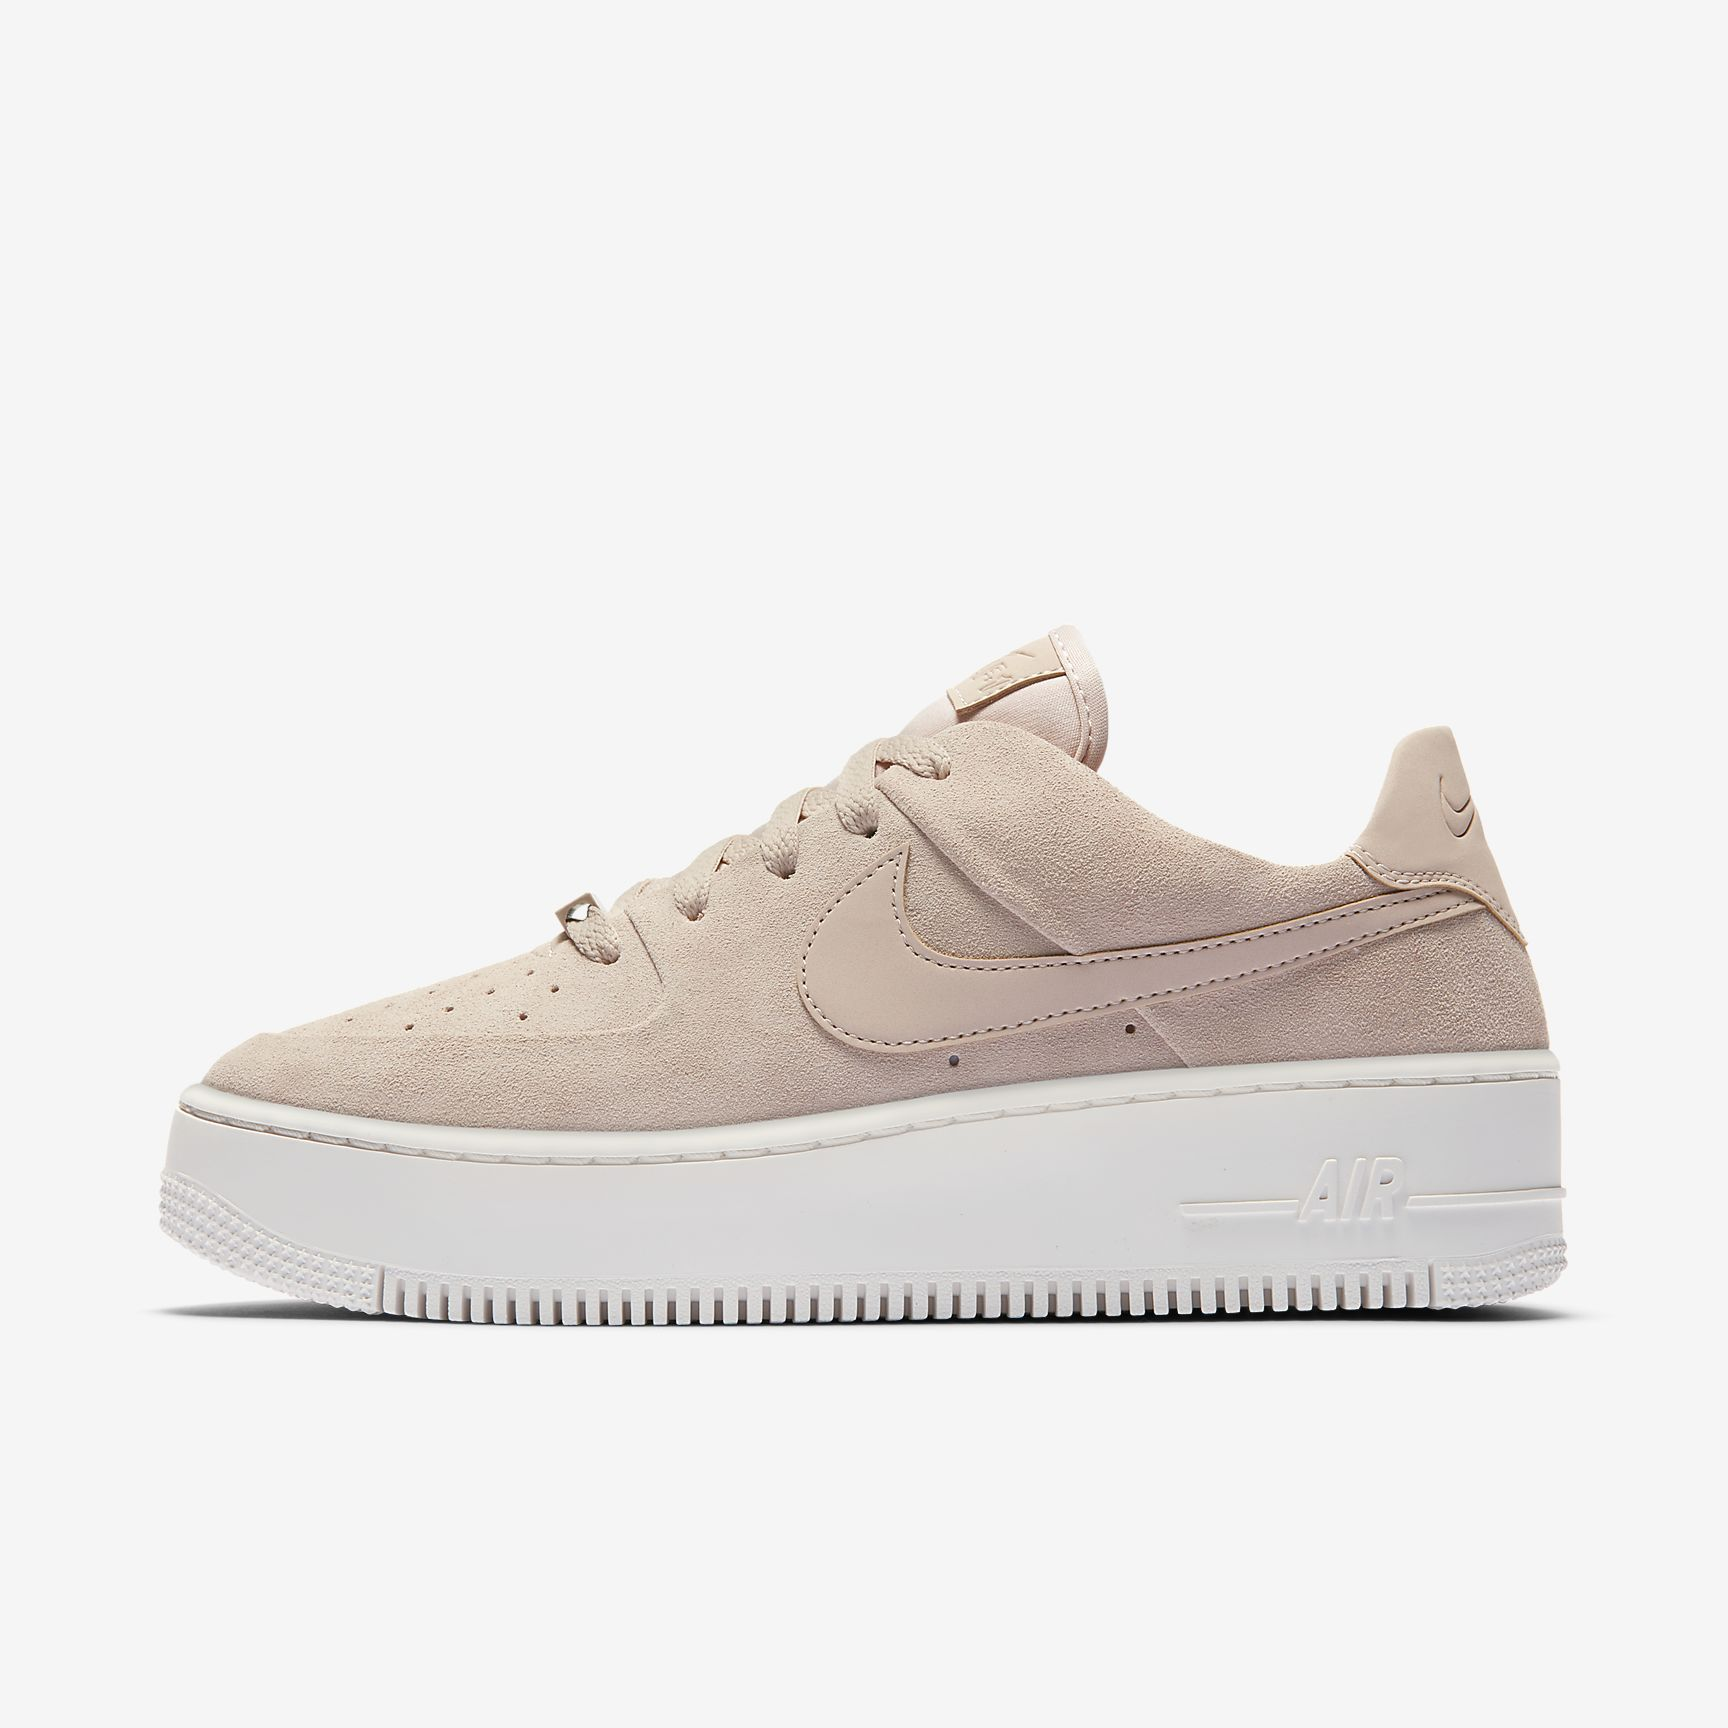 a6fb4fe3db Air Force 1 Sage Low Women's Shoe in 2019 | b u y a b l e | Nike air ...